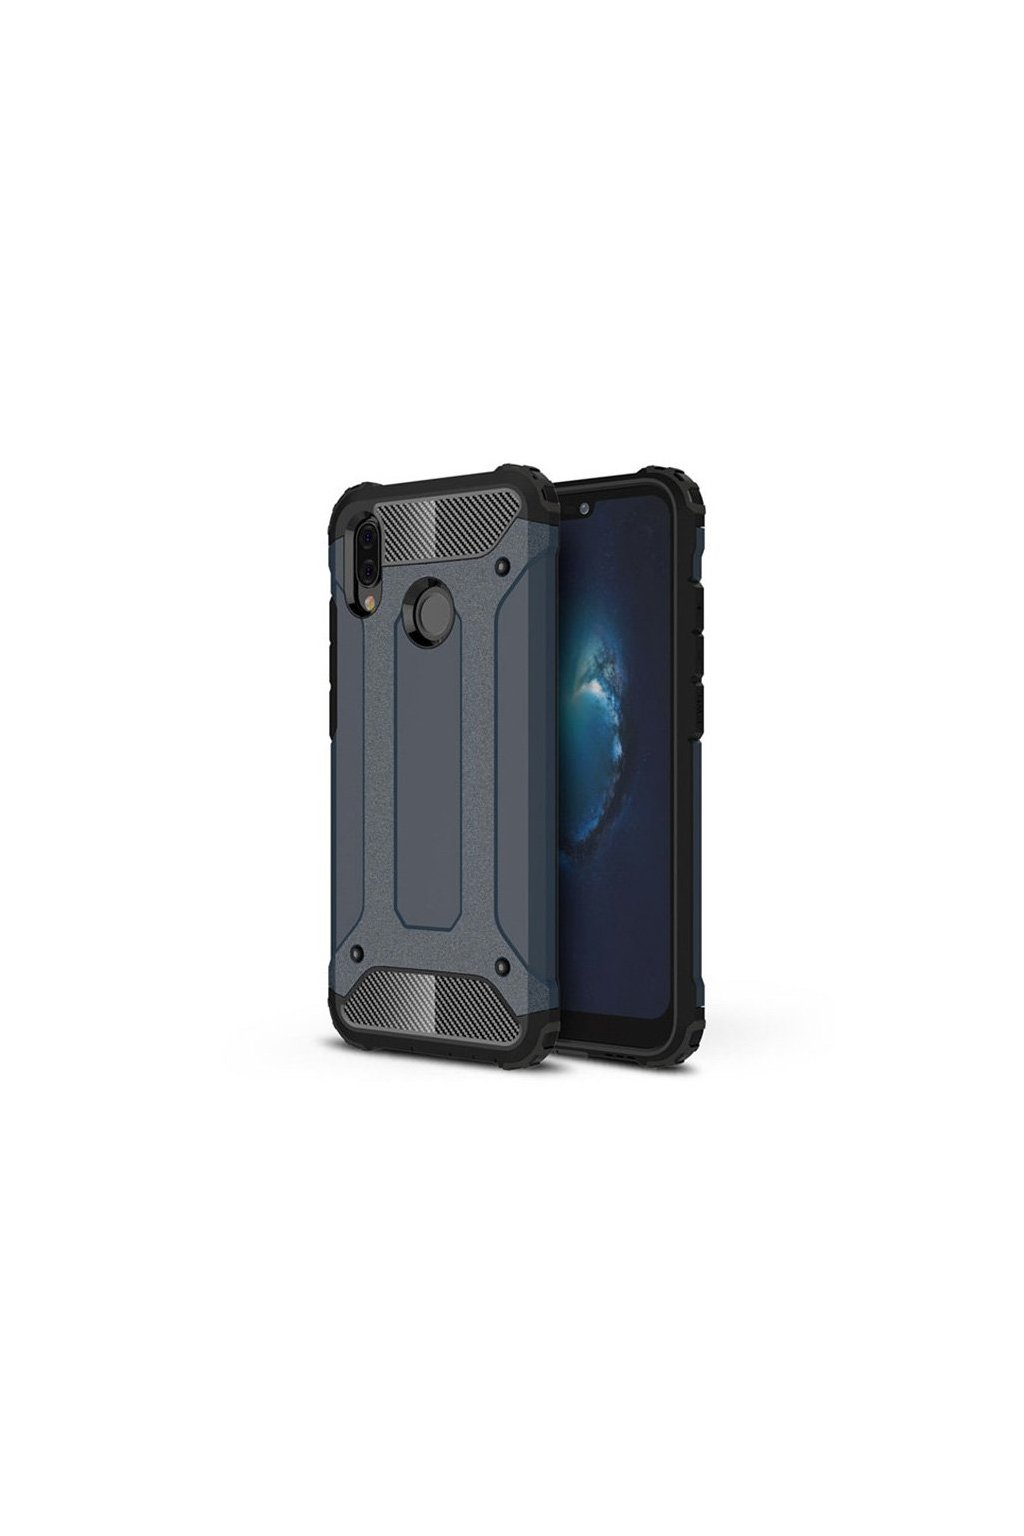 eng pl Hybrid Armor Case Tough Rugged Cover for Huawei P20 Lite blue 39561 1